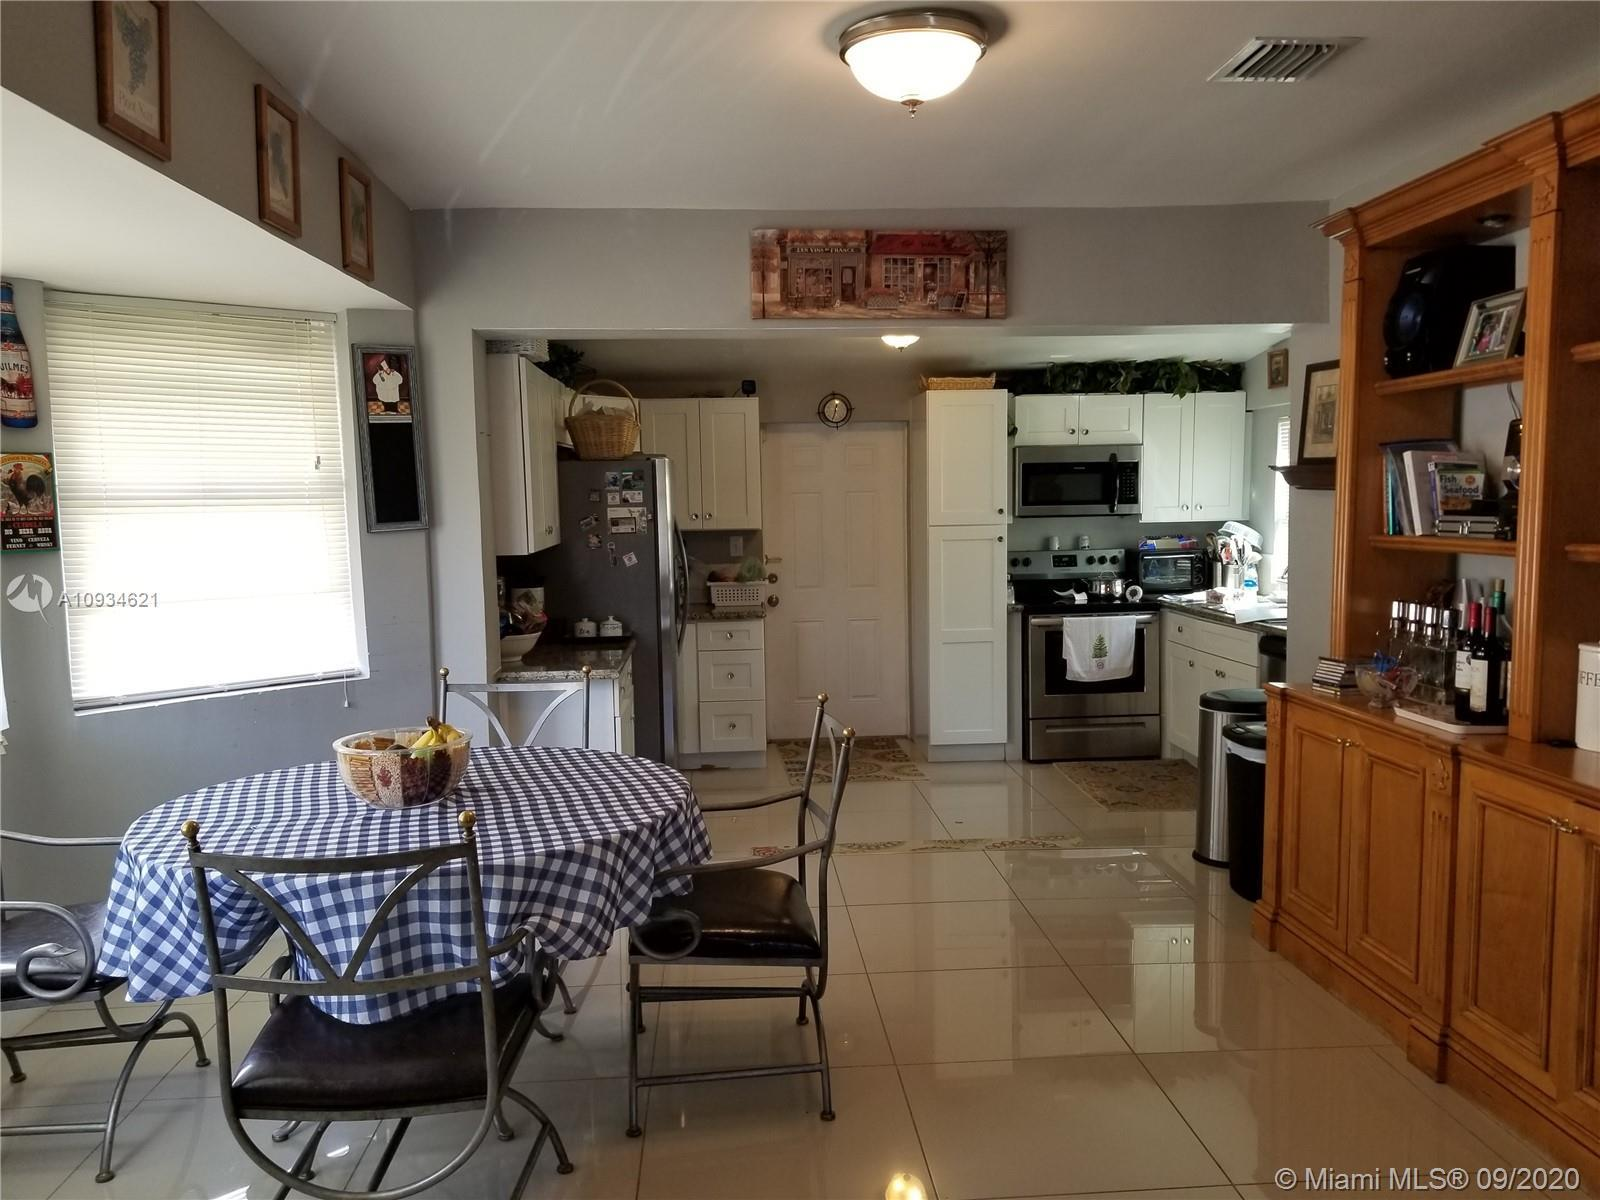 Remodeled 2/1 in great Hollywood location. New kitchen cabinets and stainless steel appliances. Titl